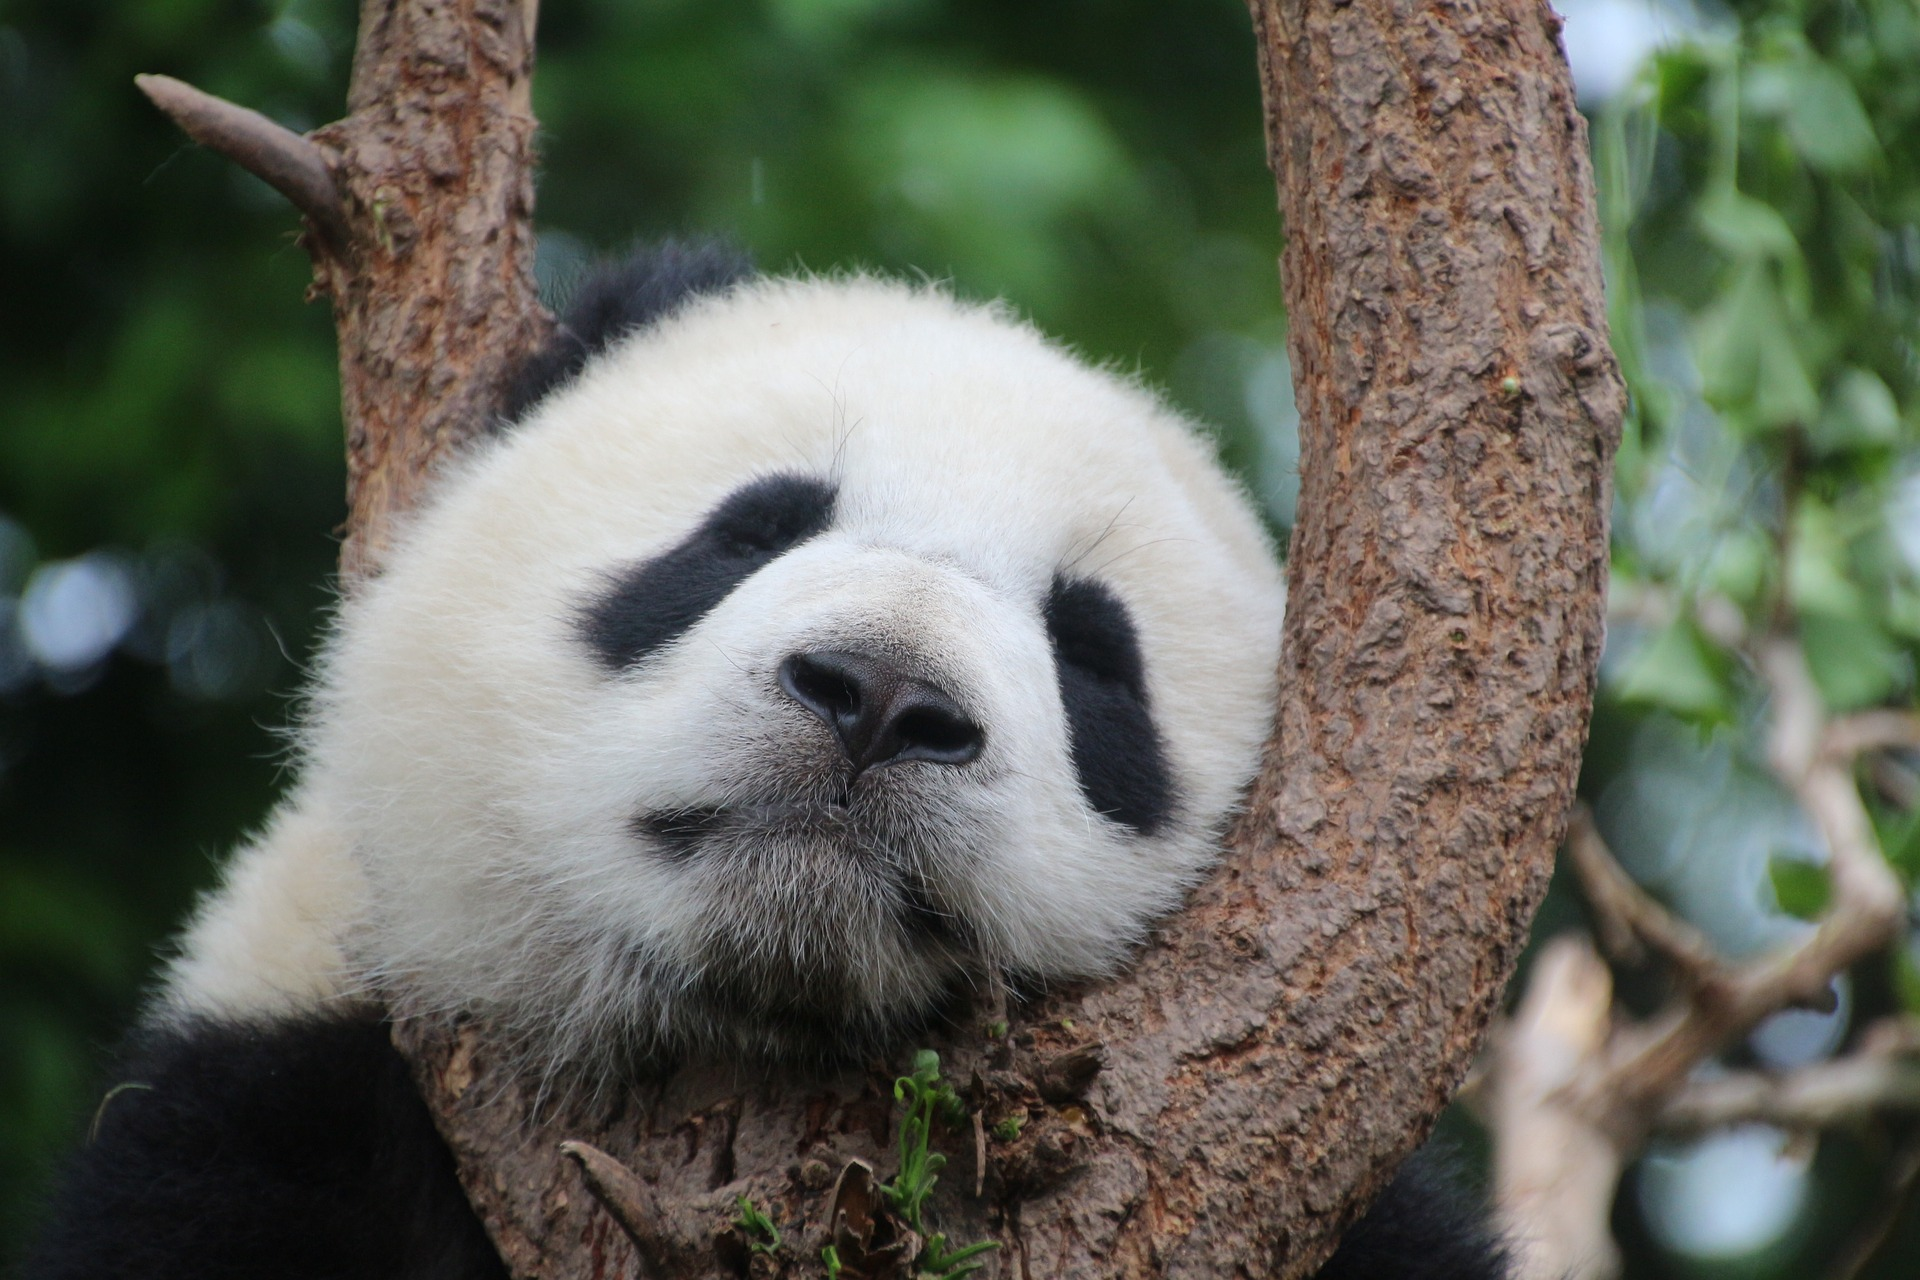 Sleeping Panda: Do Giant Pandas Hibernate?